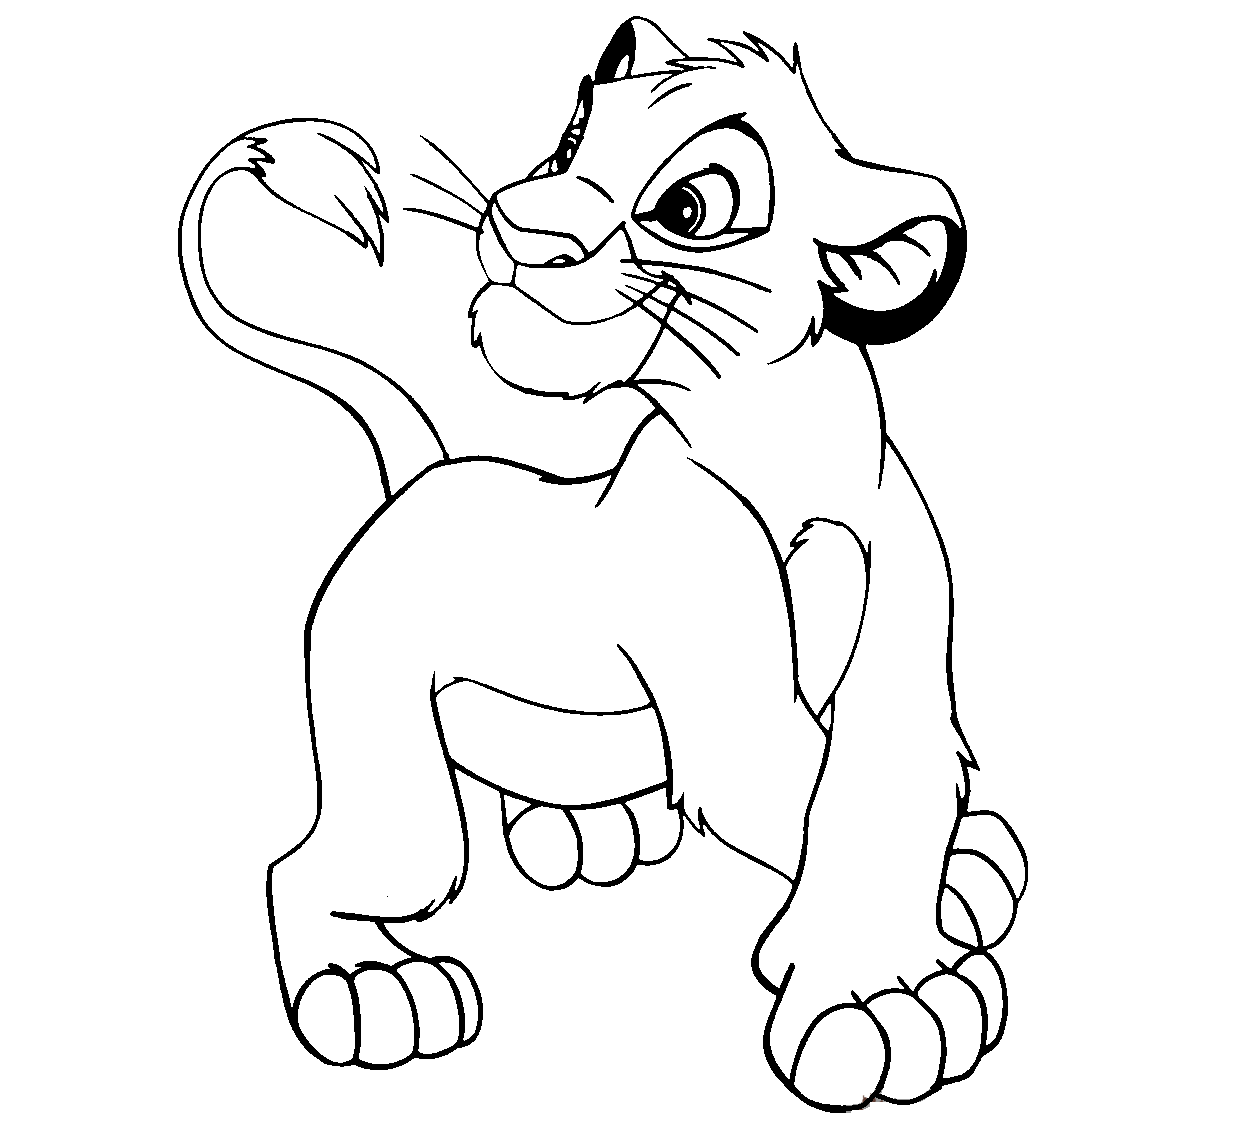 coloring page of a lion free printable lion coloring pages for kids cool2bkids page of lion a coloring